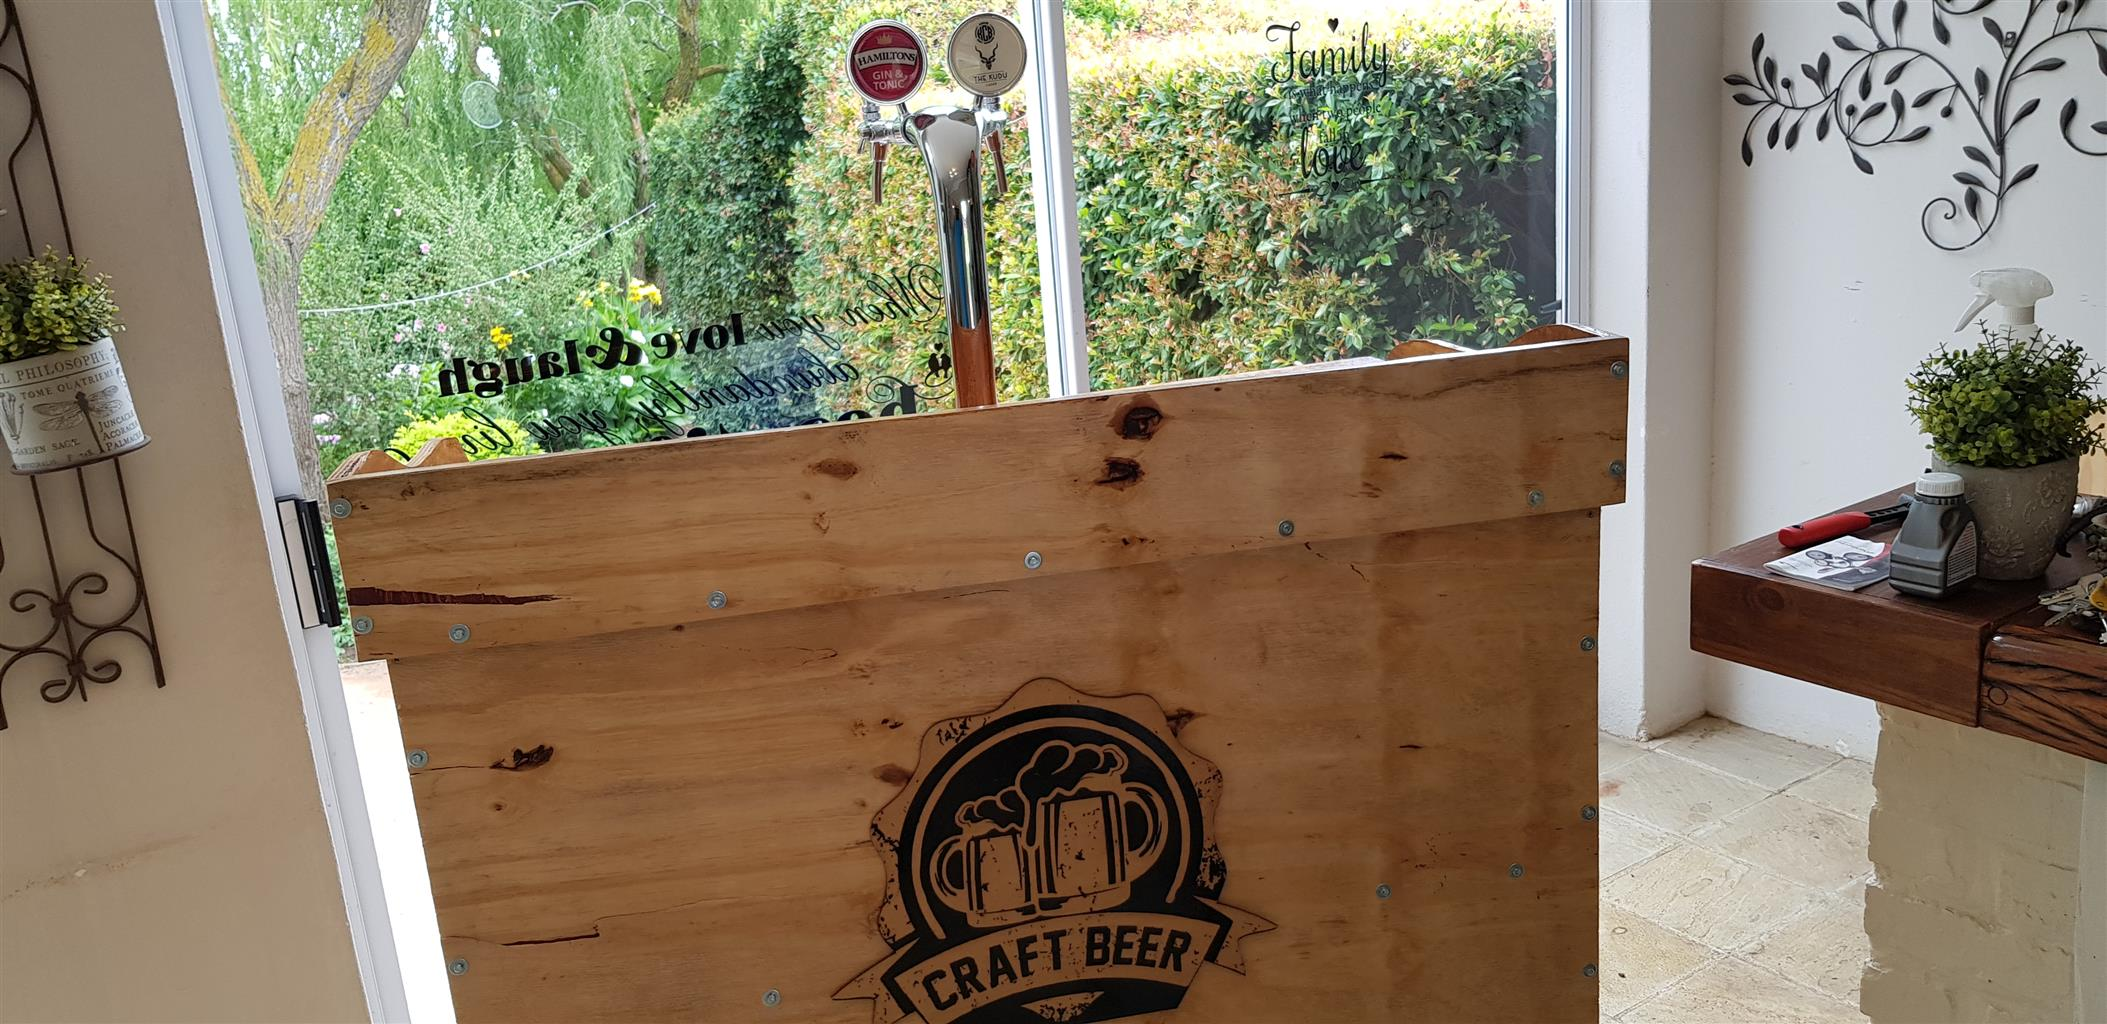 Beer and Gin on Tap Keg Mobile Bar for sale or to rent